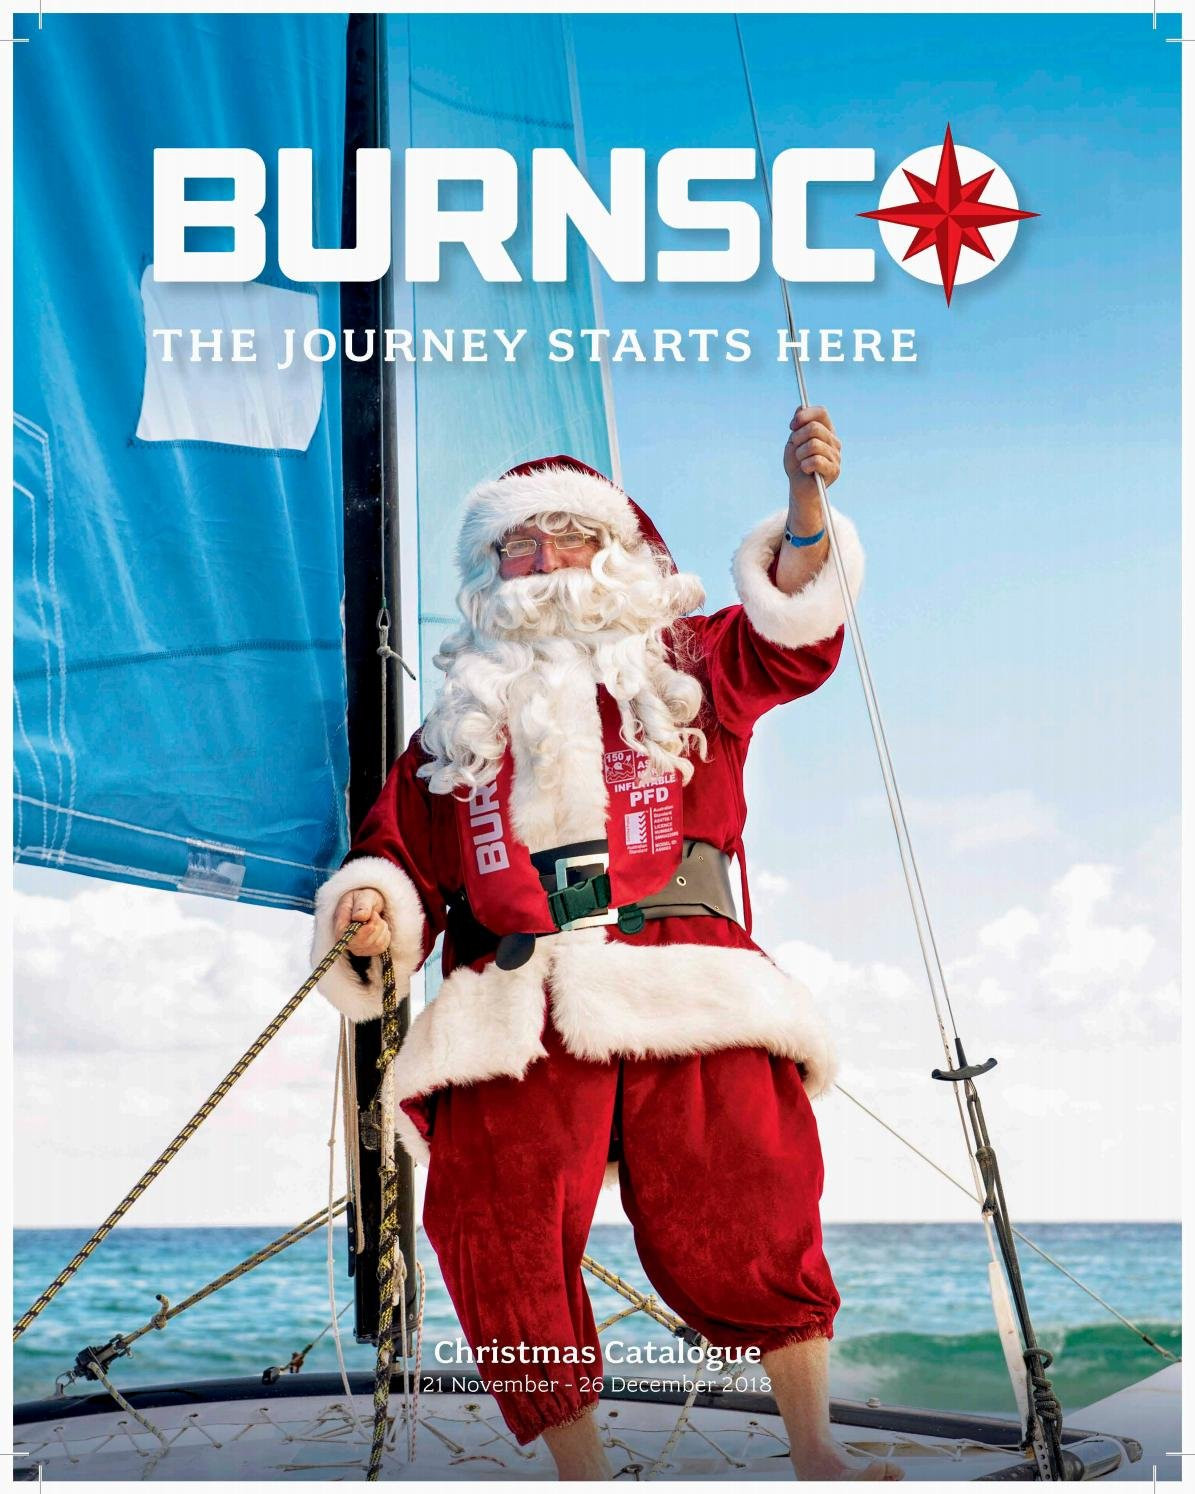 Burnsco mailer  - 21.11.2018 - 30.12.2018. Page 1.